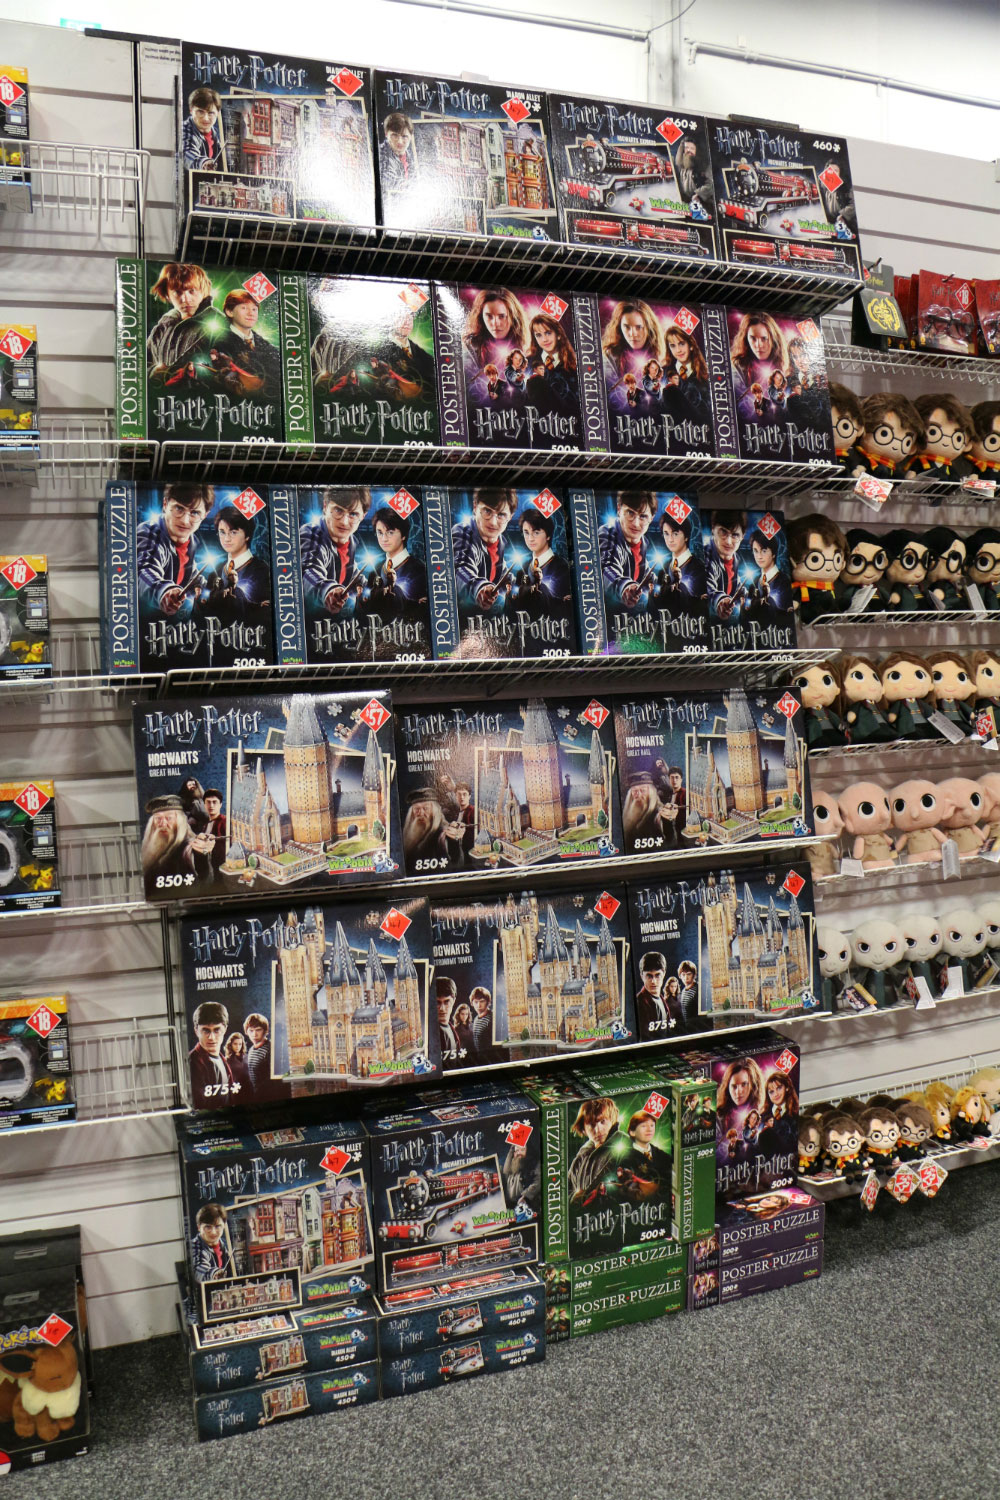 Armageddon Expo 2017 – Auckland – Harry Potter Merchandise – 5 (Photo credit: Tracey Wong)